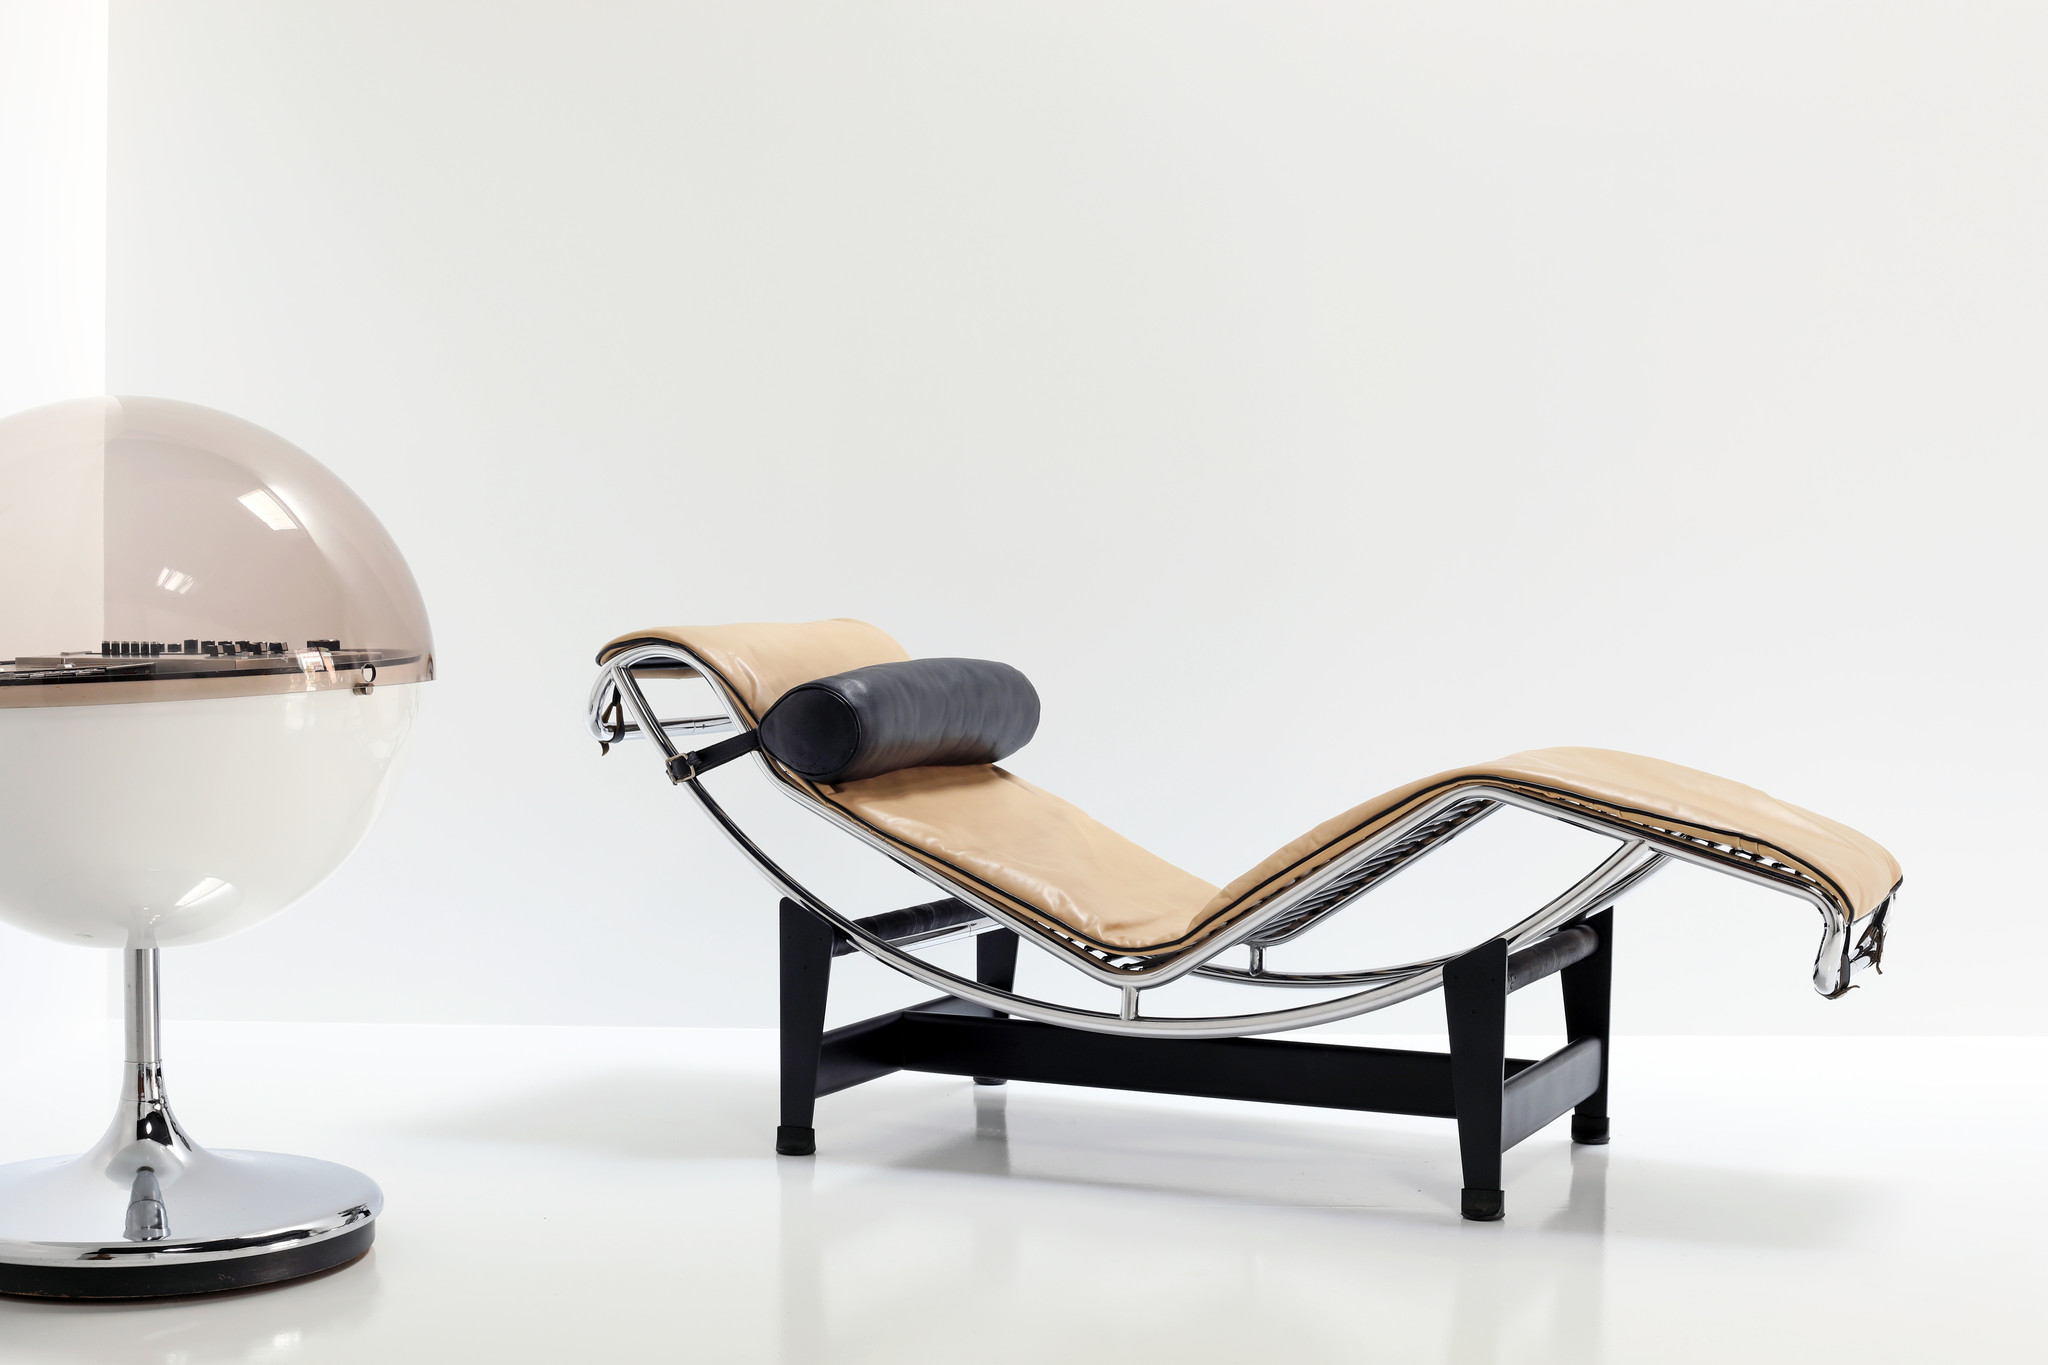 Chaise Longue designed by Le Corbusier LC4 for Cassina, 1970's